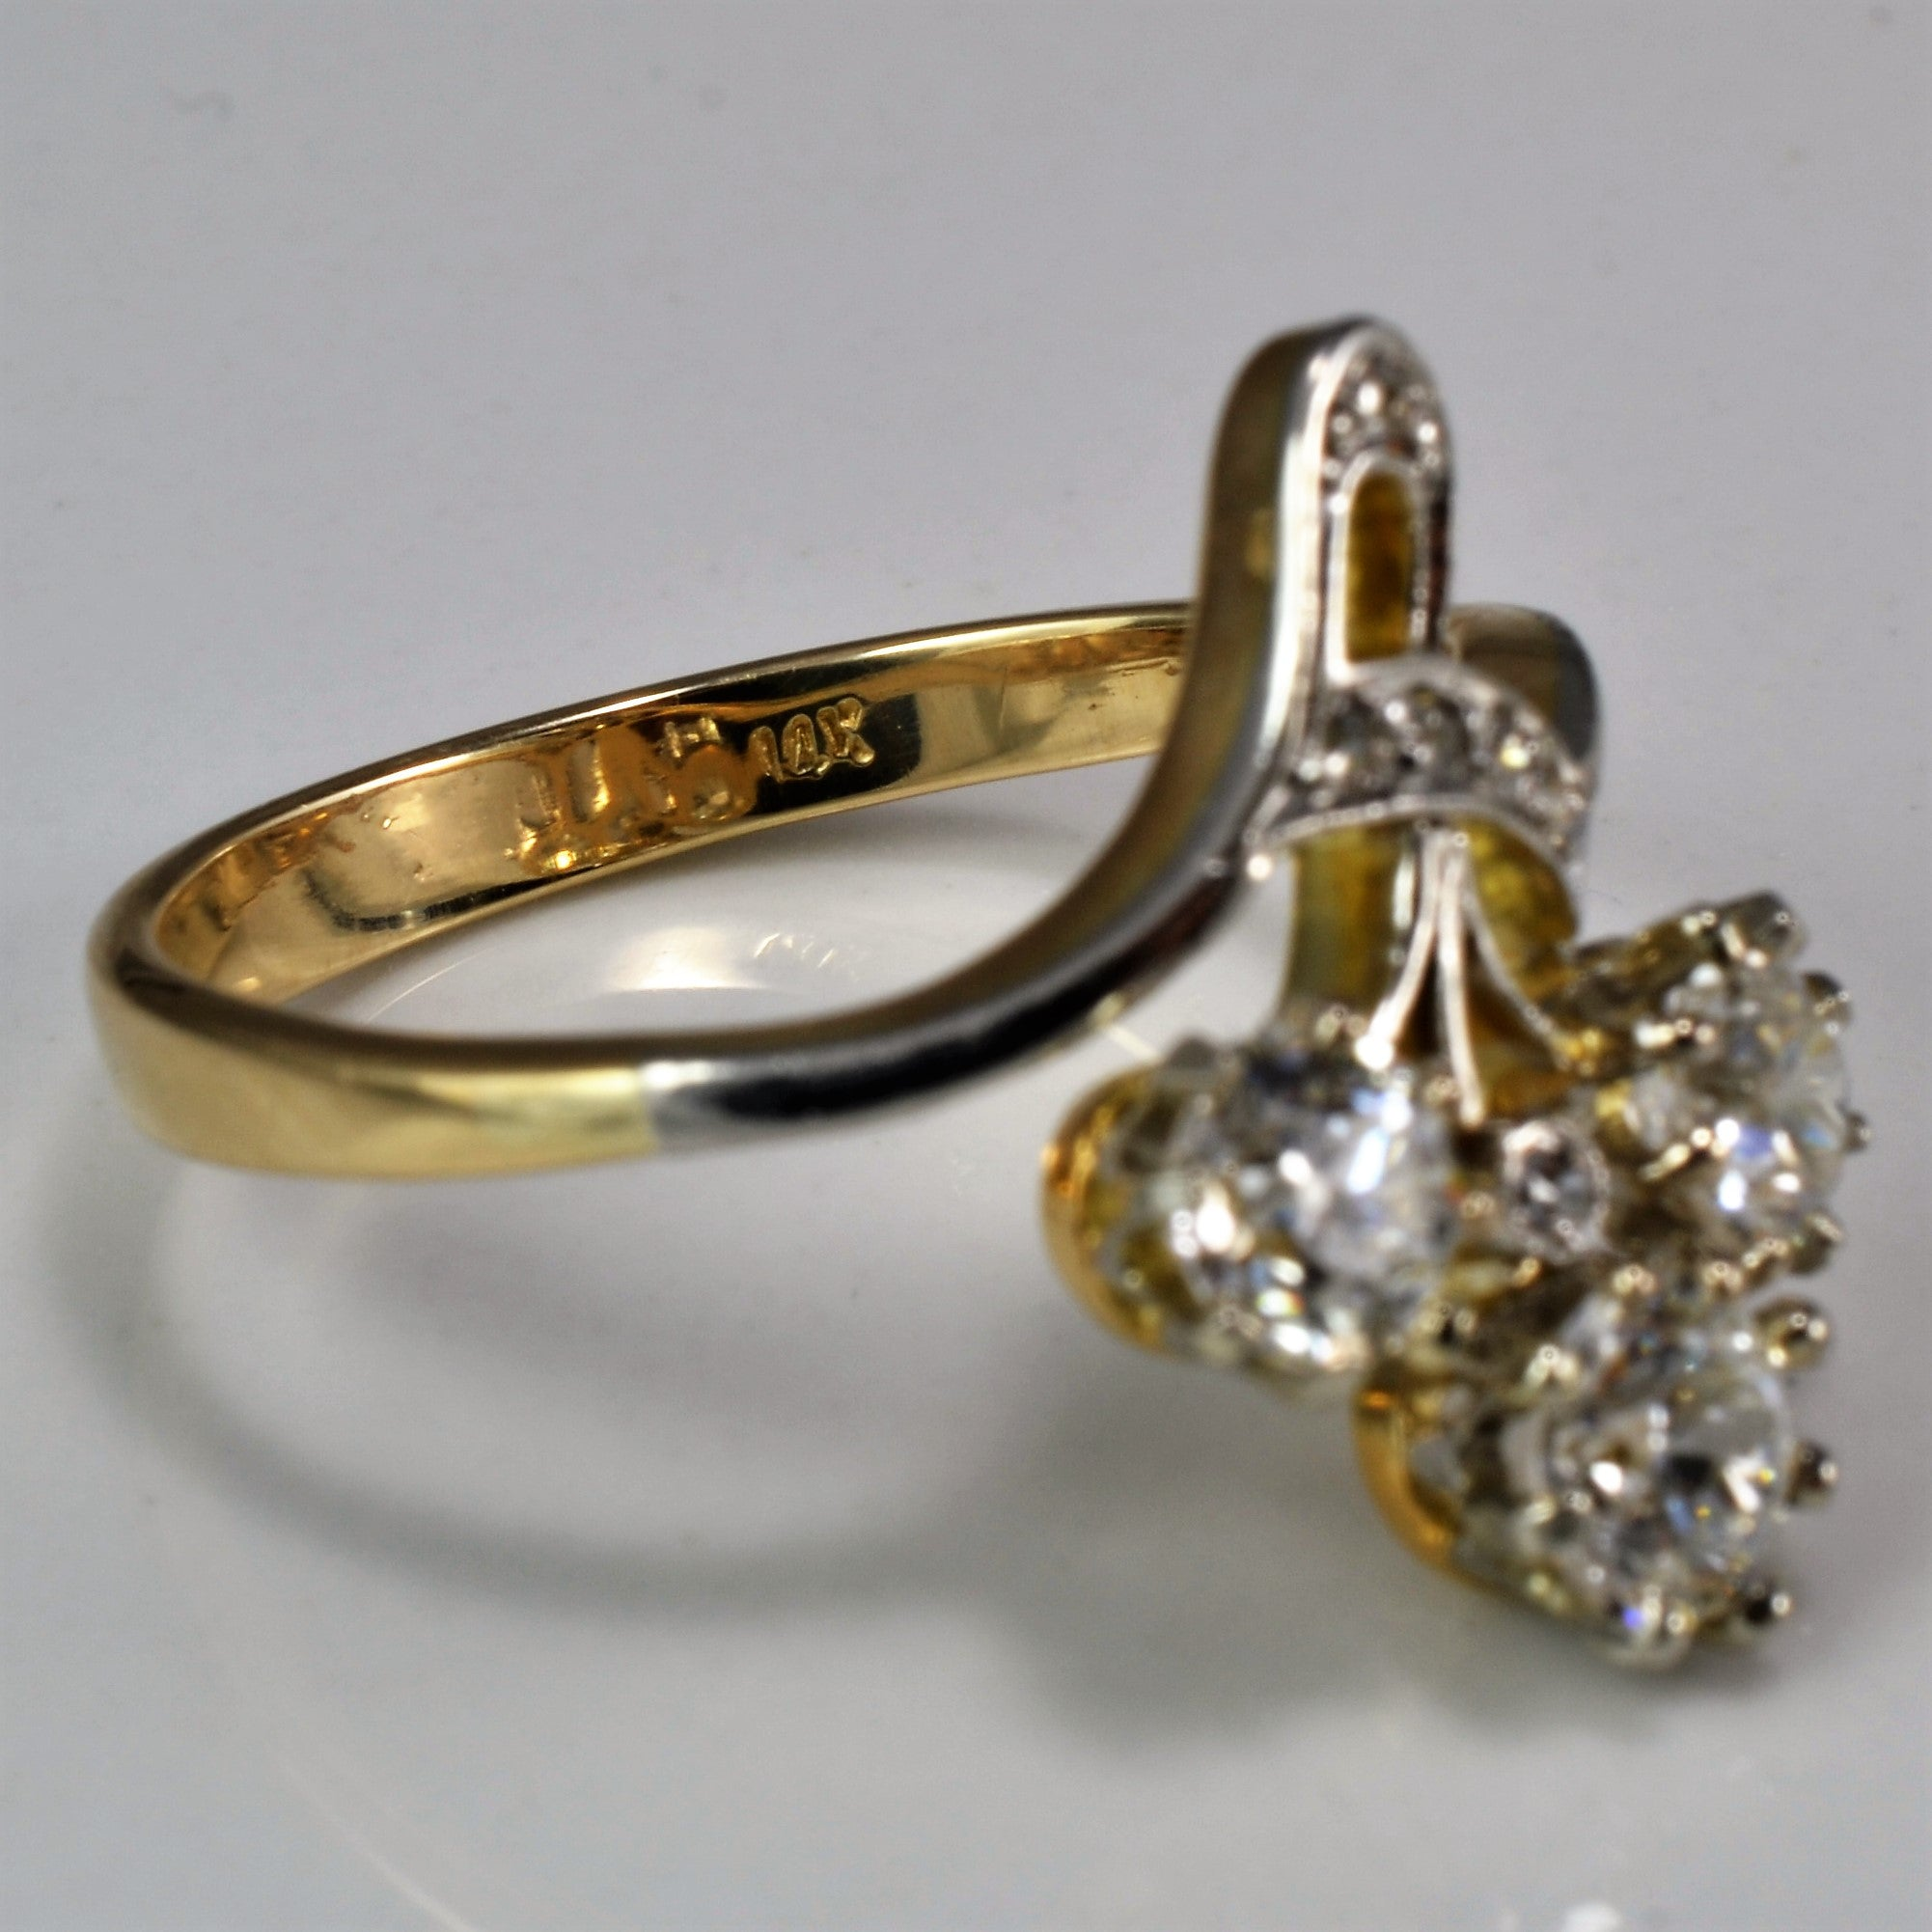 Signature Art Nouveau Era Engagement Ring | 1.00 ctw, SZ 7.25 |